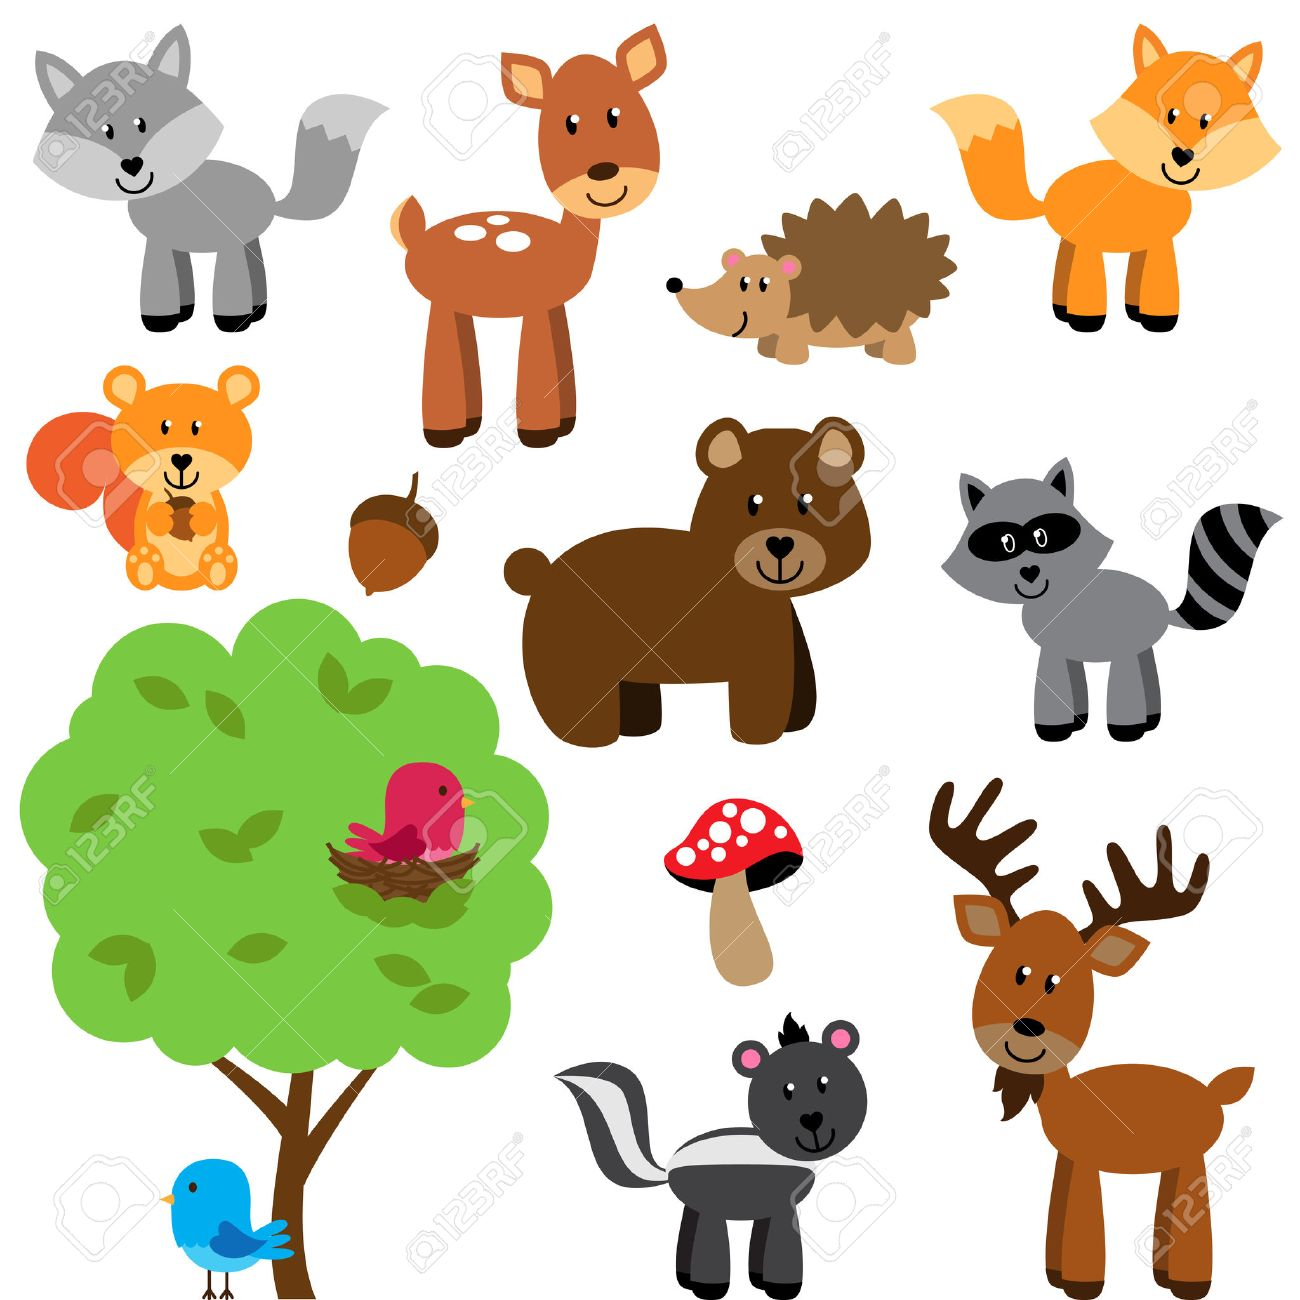 Vector Set of Cute Woodland and Forest Animals - 29966253